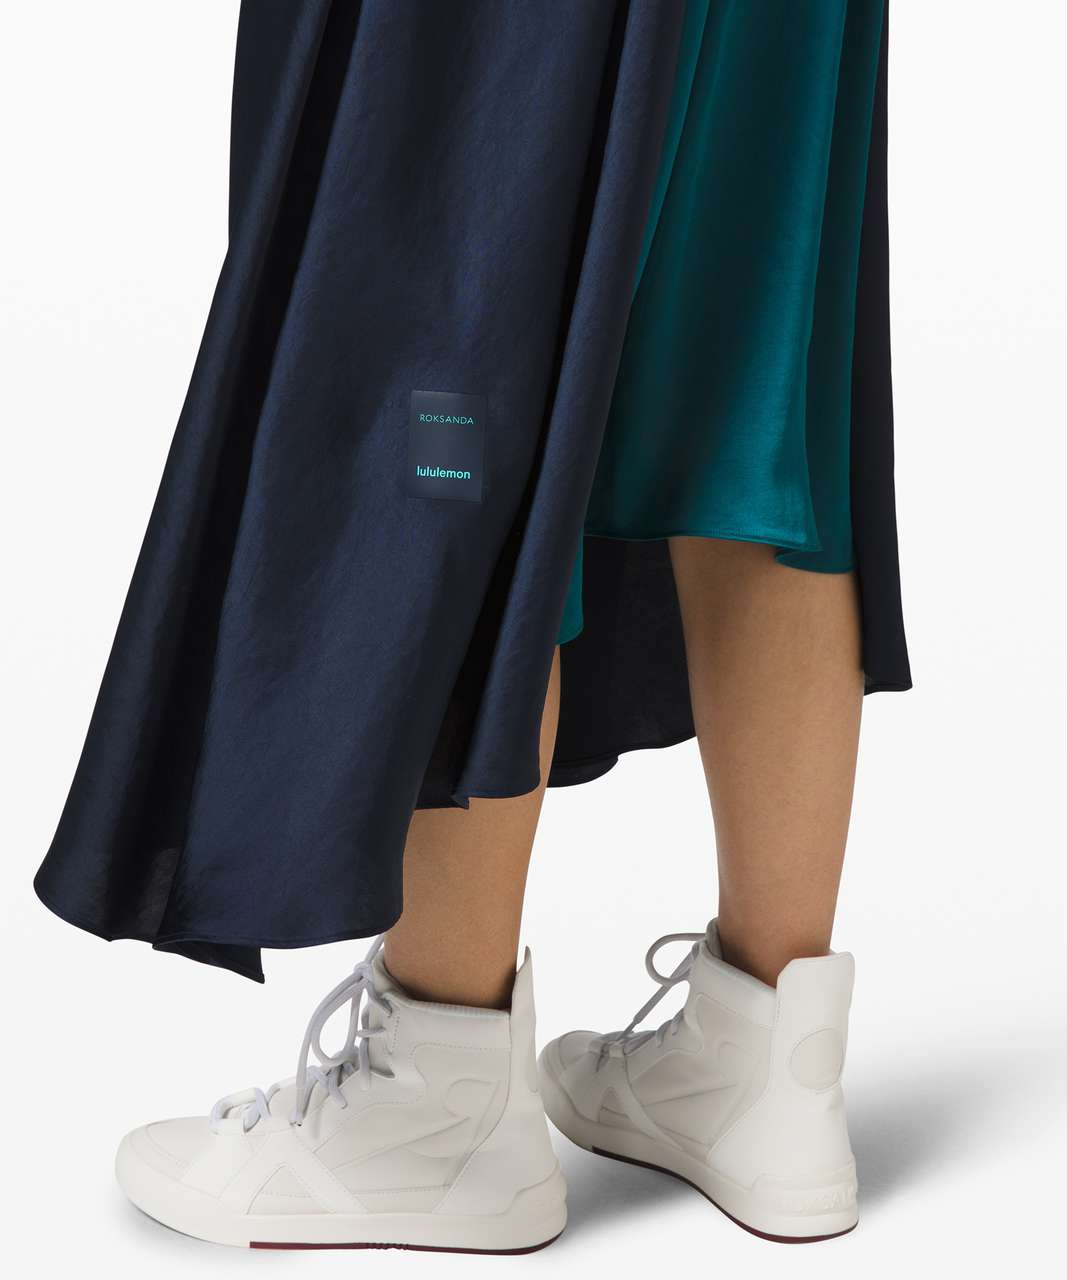 Lululemon Face Forward Skirt *lululemon x Roksanda - True Navy / Emerald / Frost